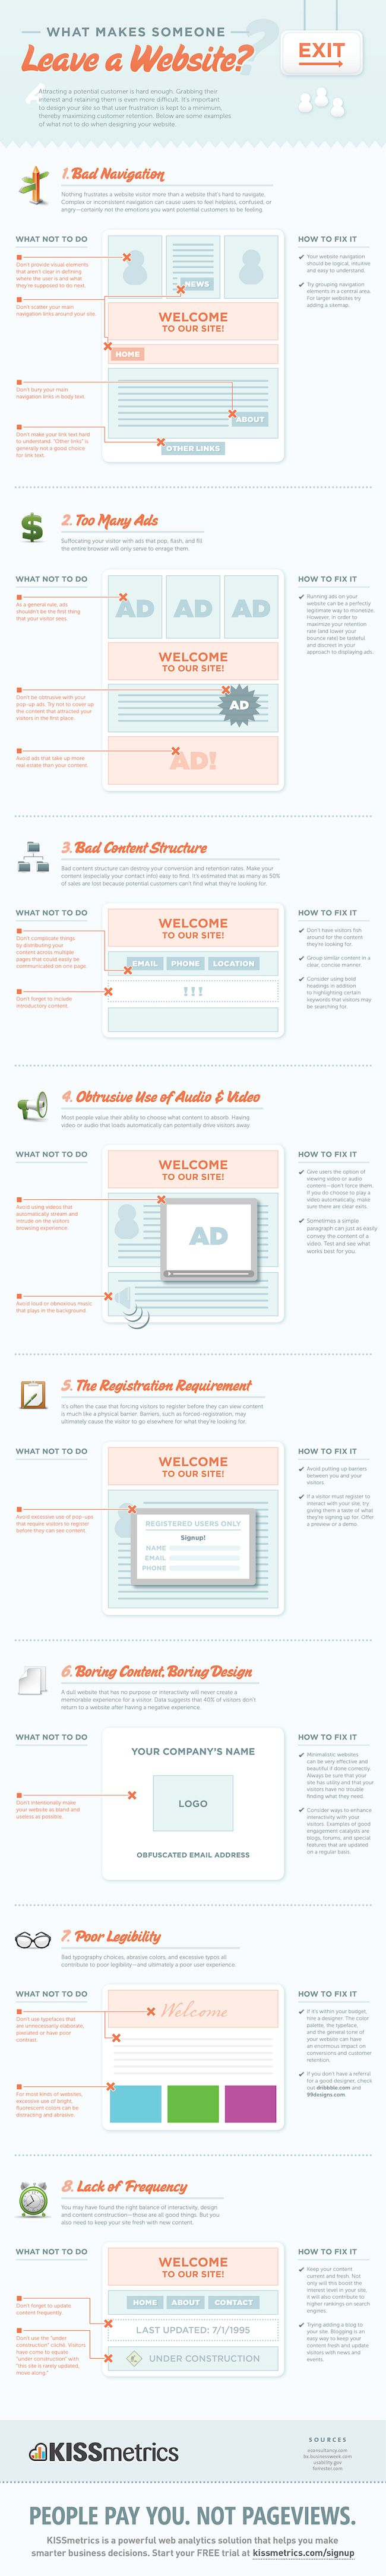 Infographie du site web presque parfait - #Arobasenet / Perfect website infographic